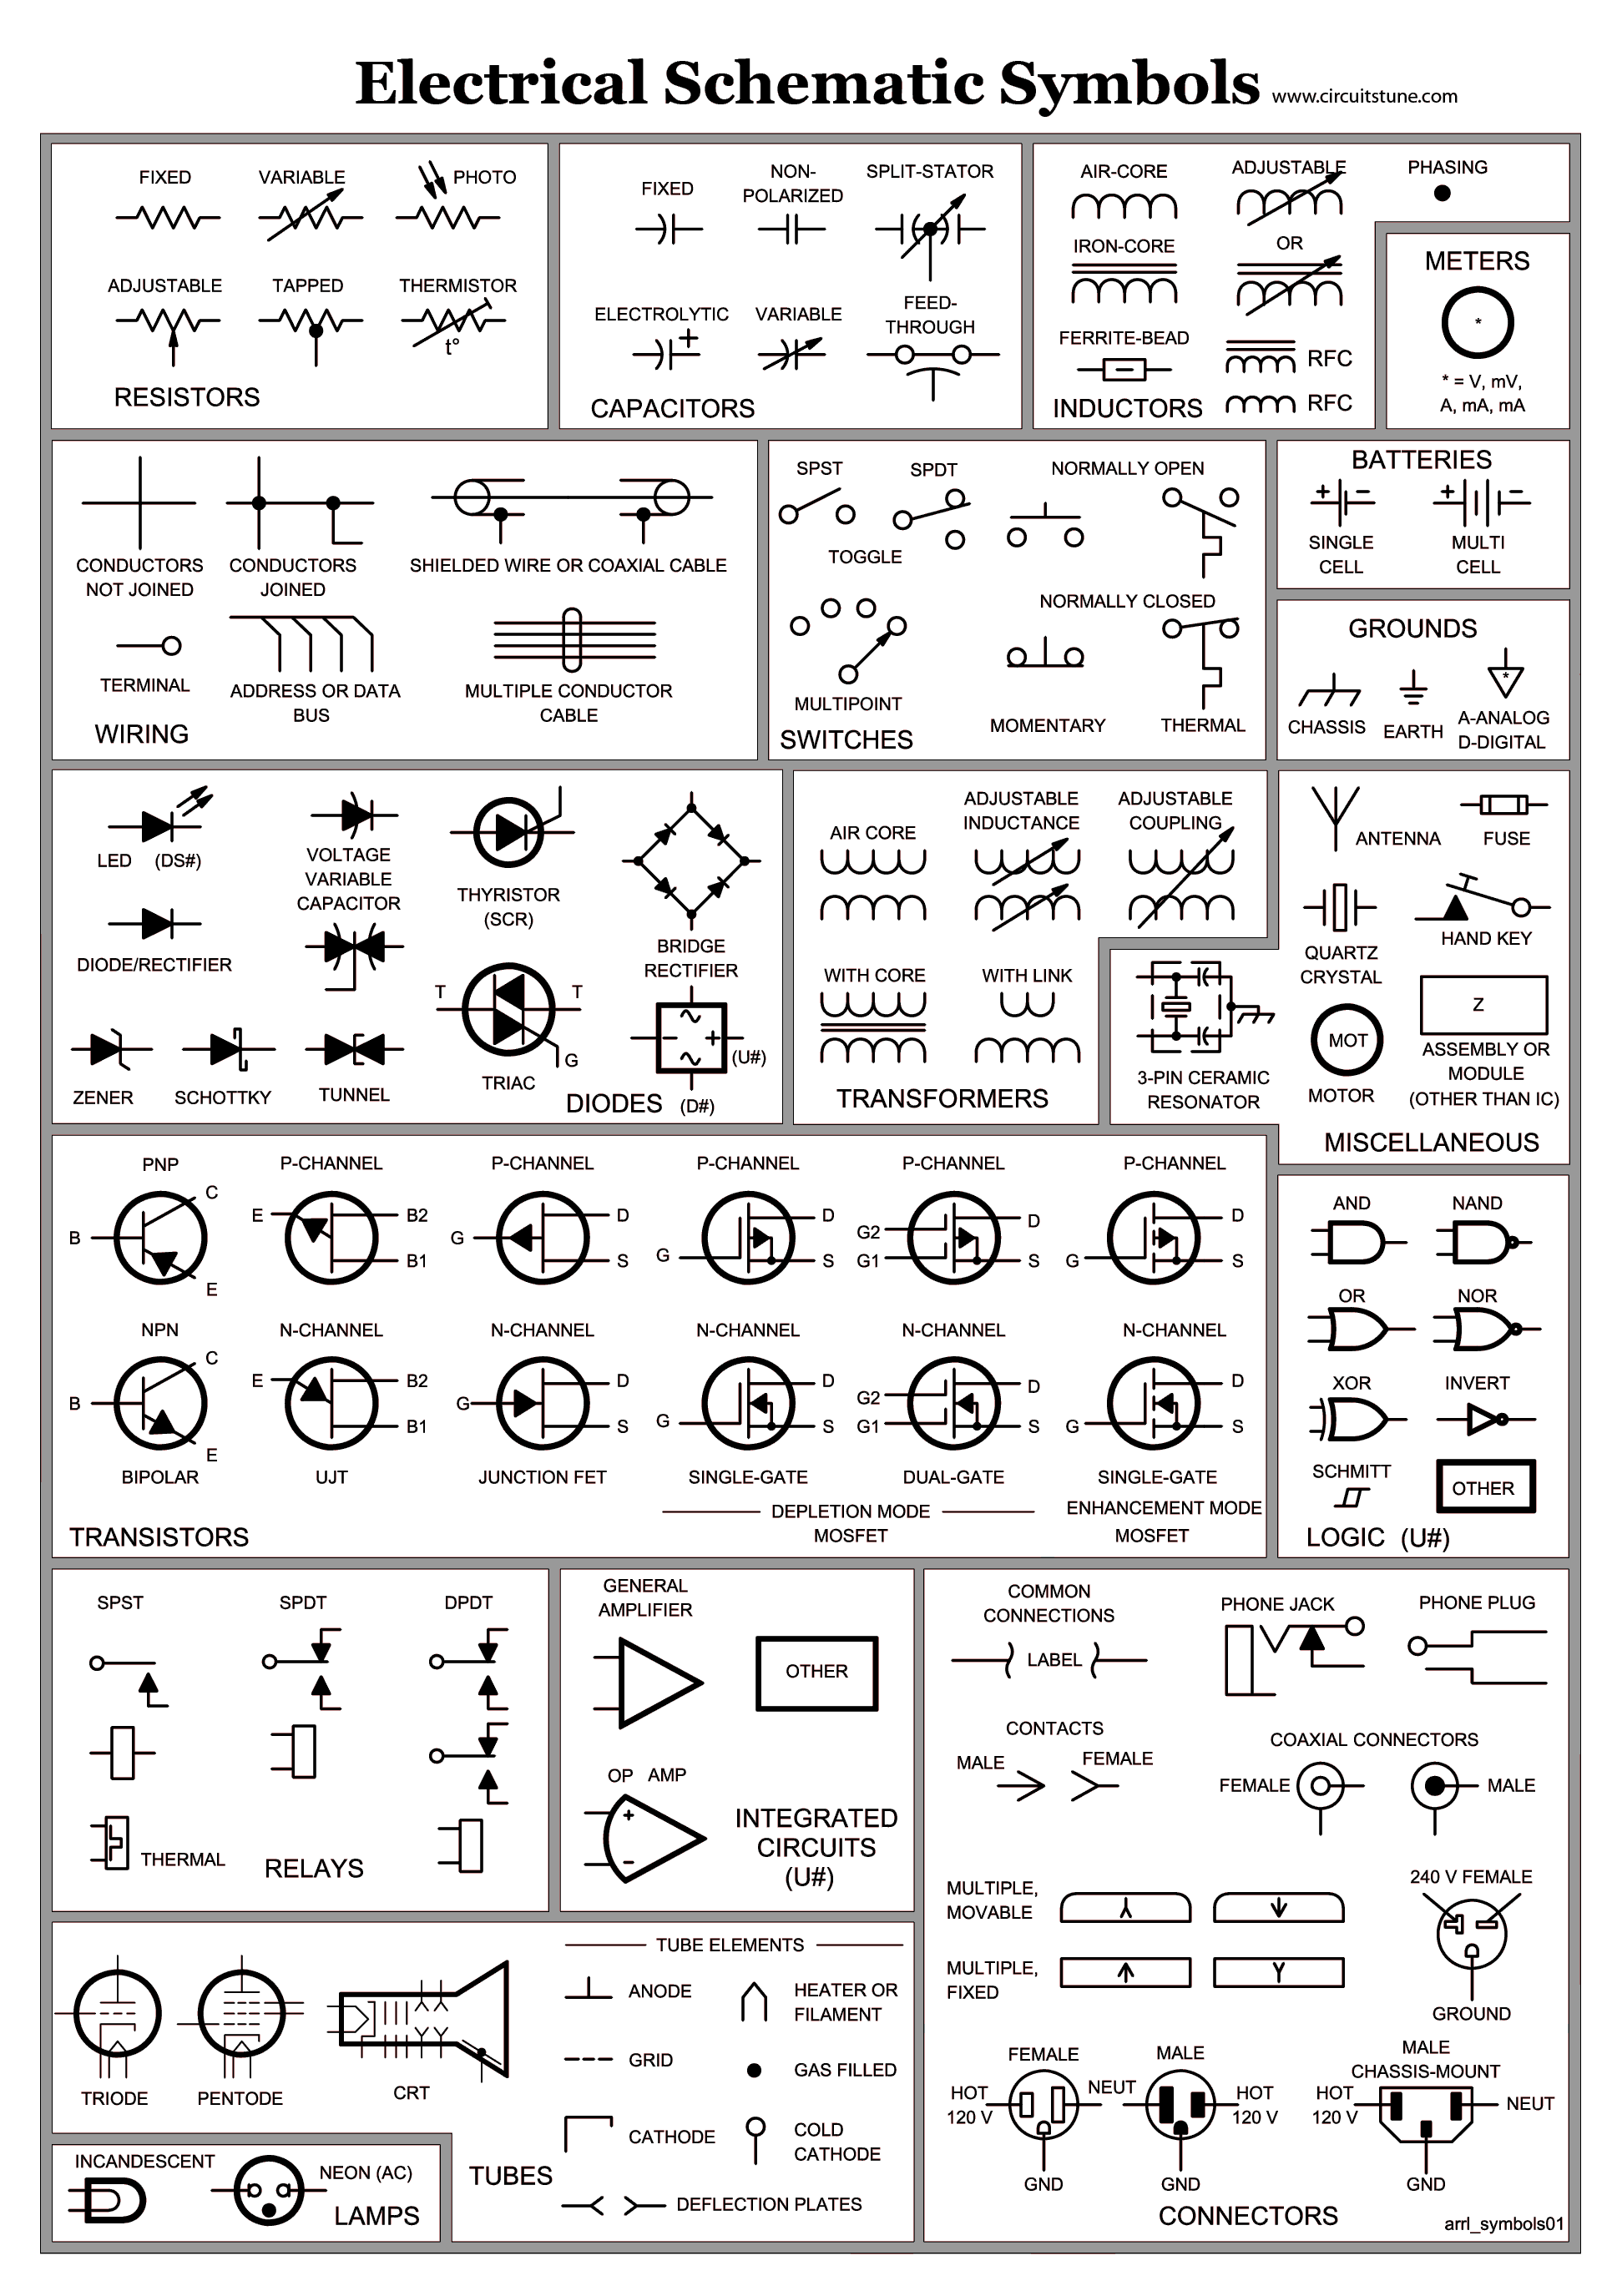 a65d176364692d2ebe913b58a654cfc3 electrical schematic symbols wire diagram symbols automotive wiring diagram symbols at sewacar.co